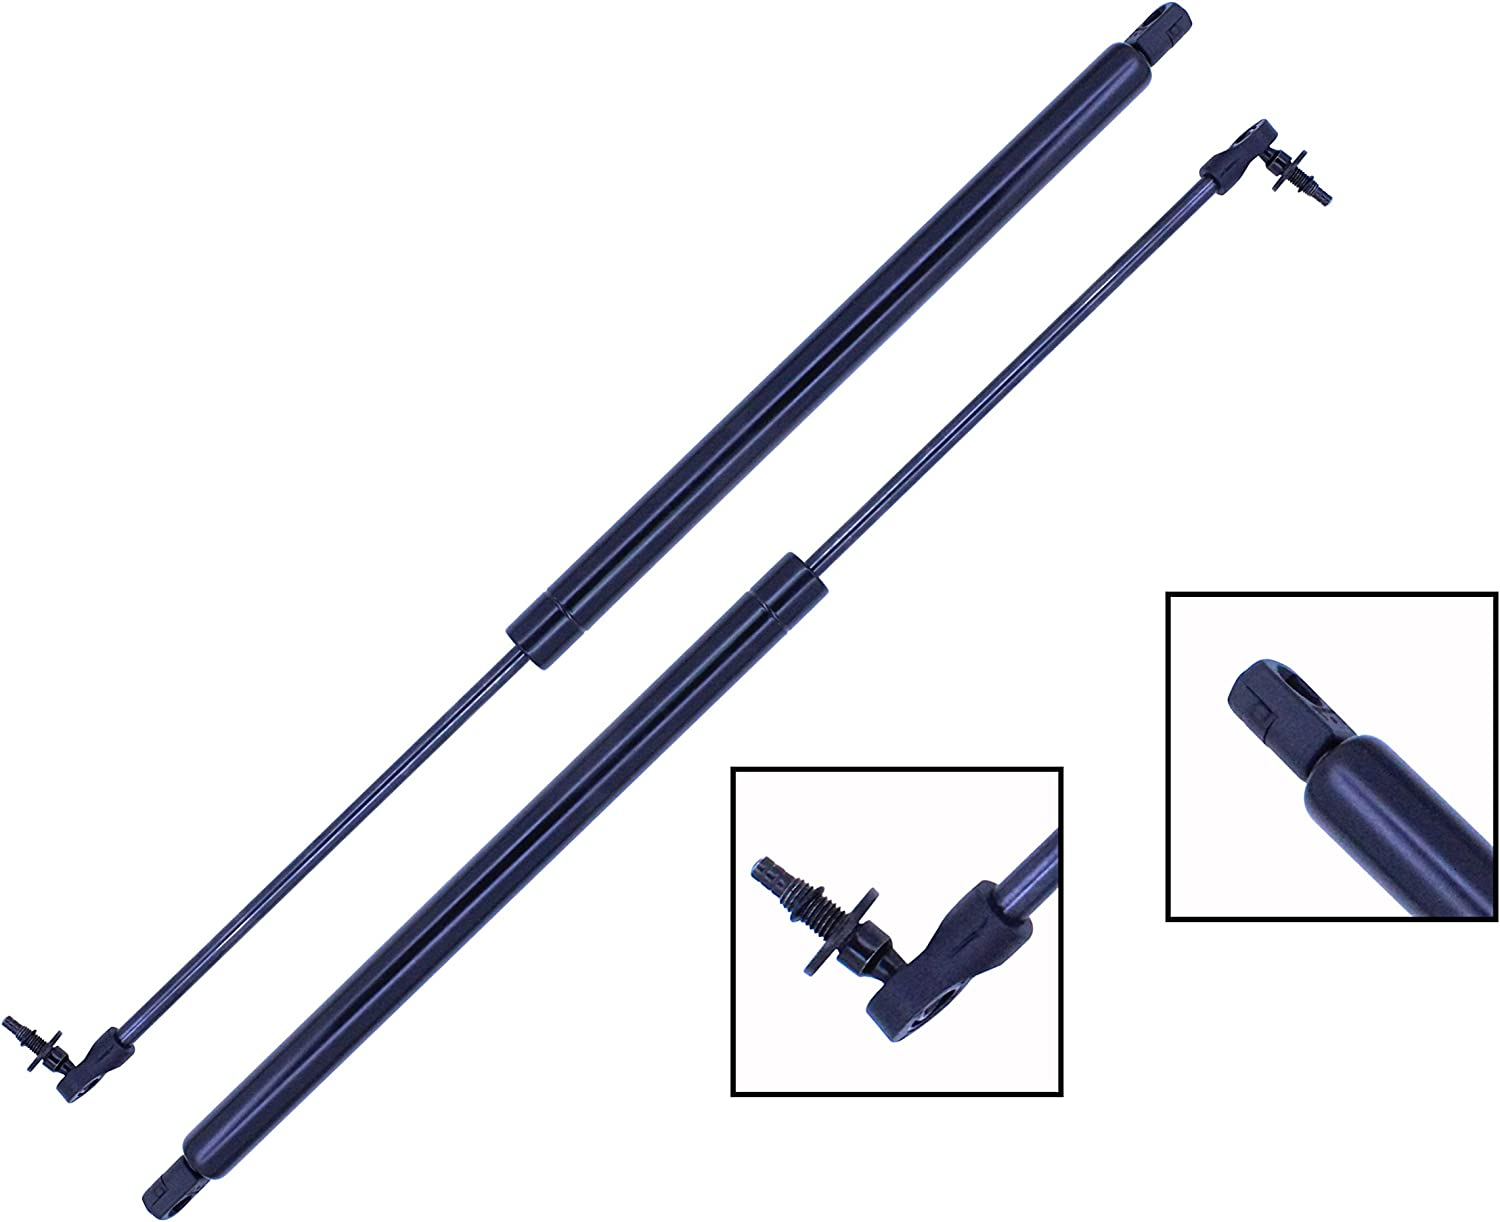 2 Pieces Pontiac Trans Sport SET Tuff Support Liftgate Lift Supports 1990 To 1991 Chevrolet Lumina APV Oldsmobile Silhouette